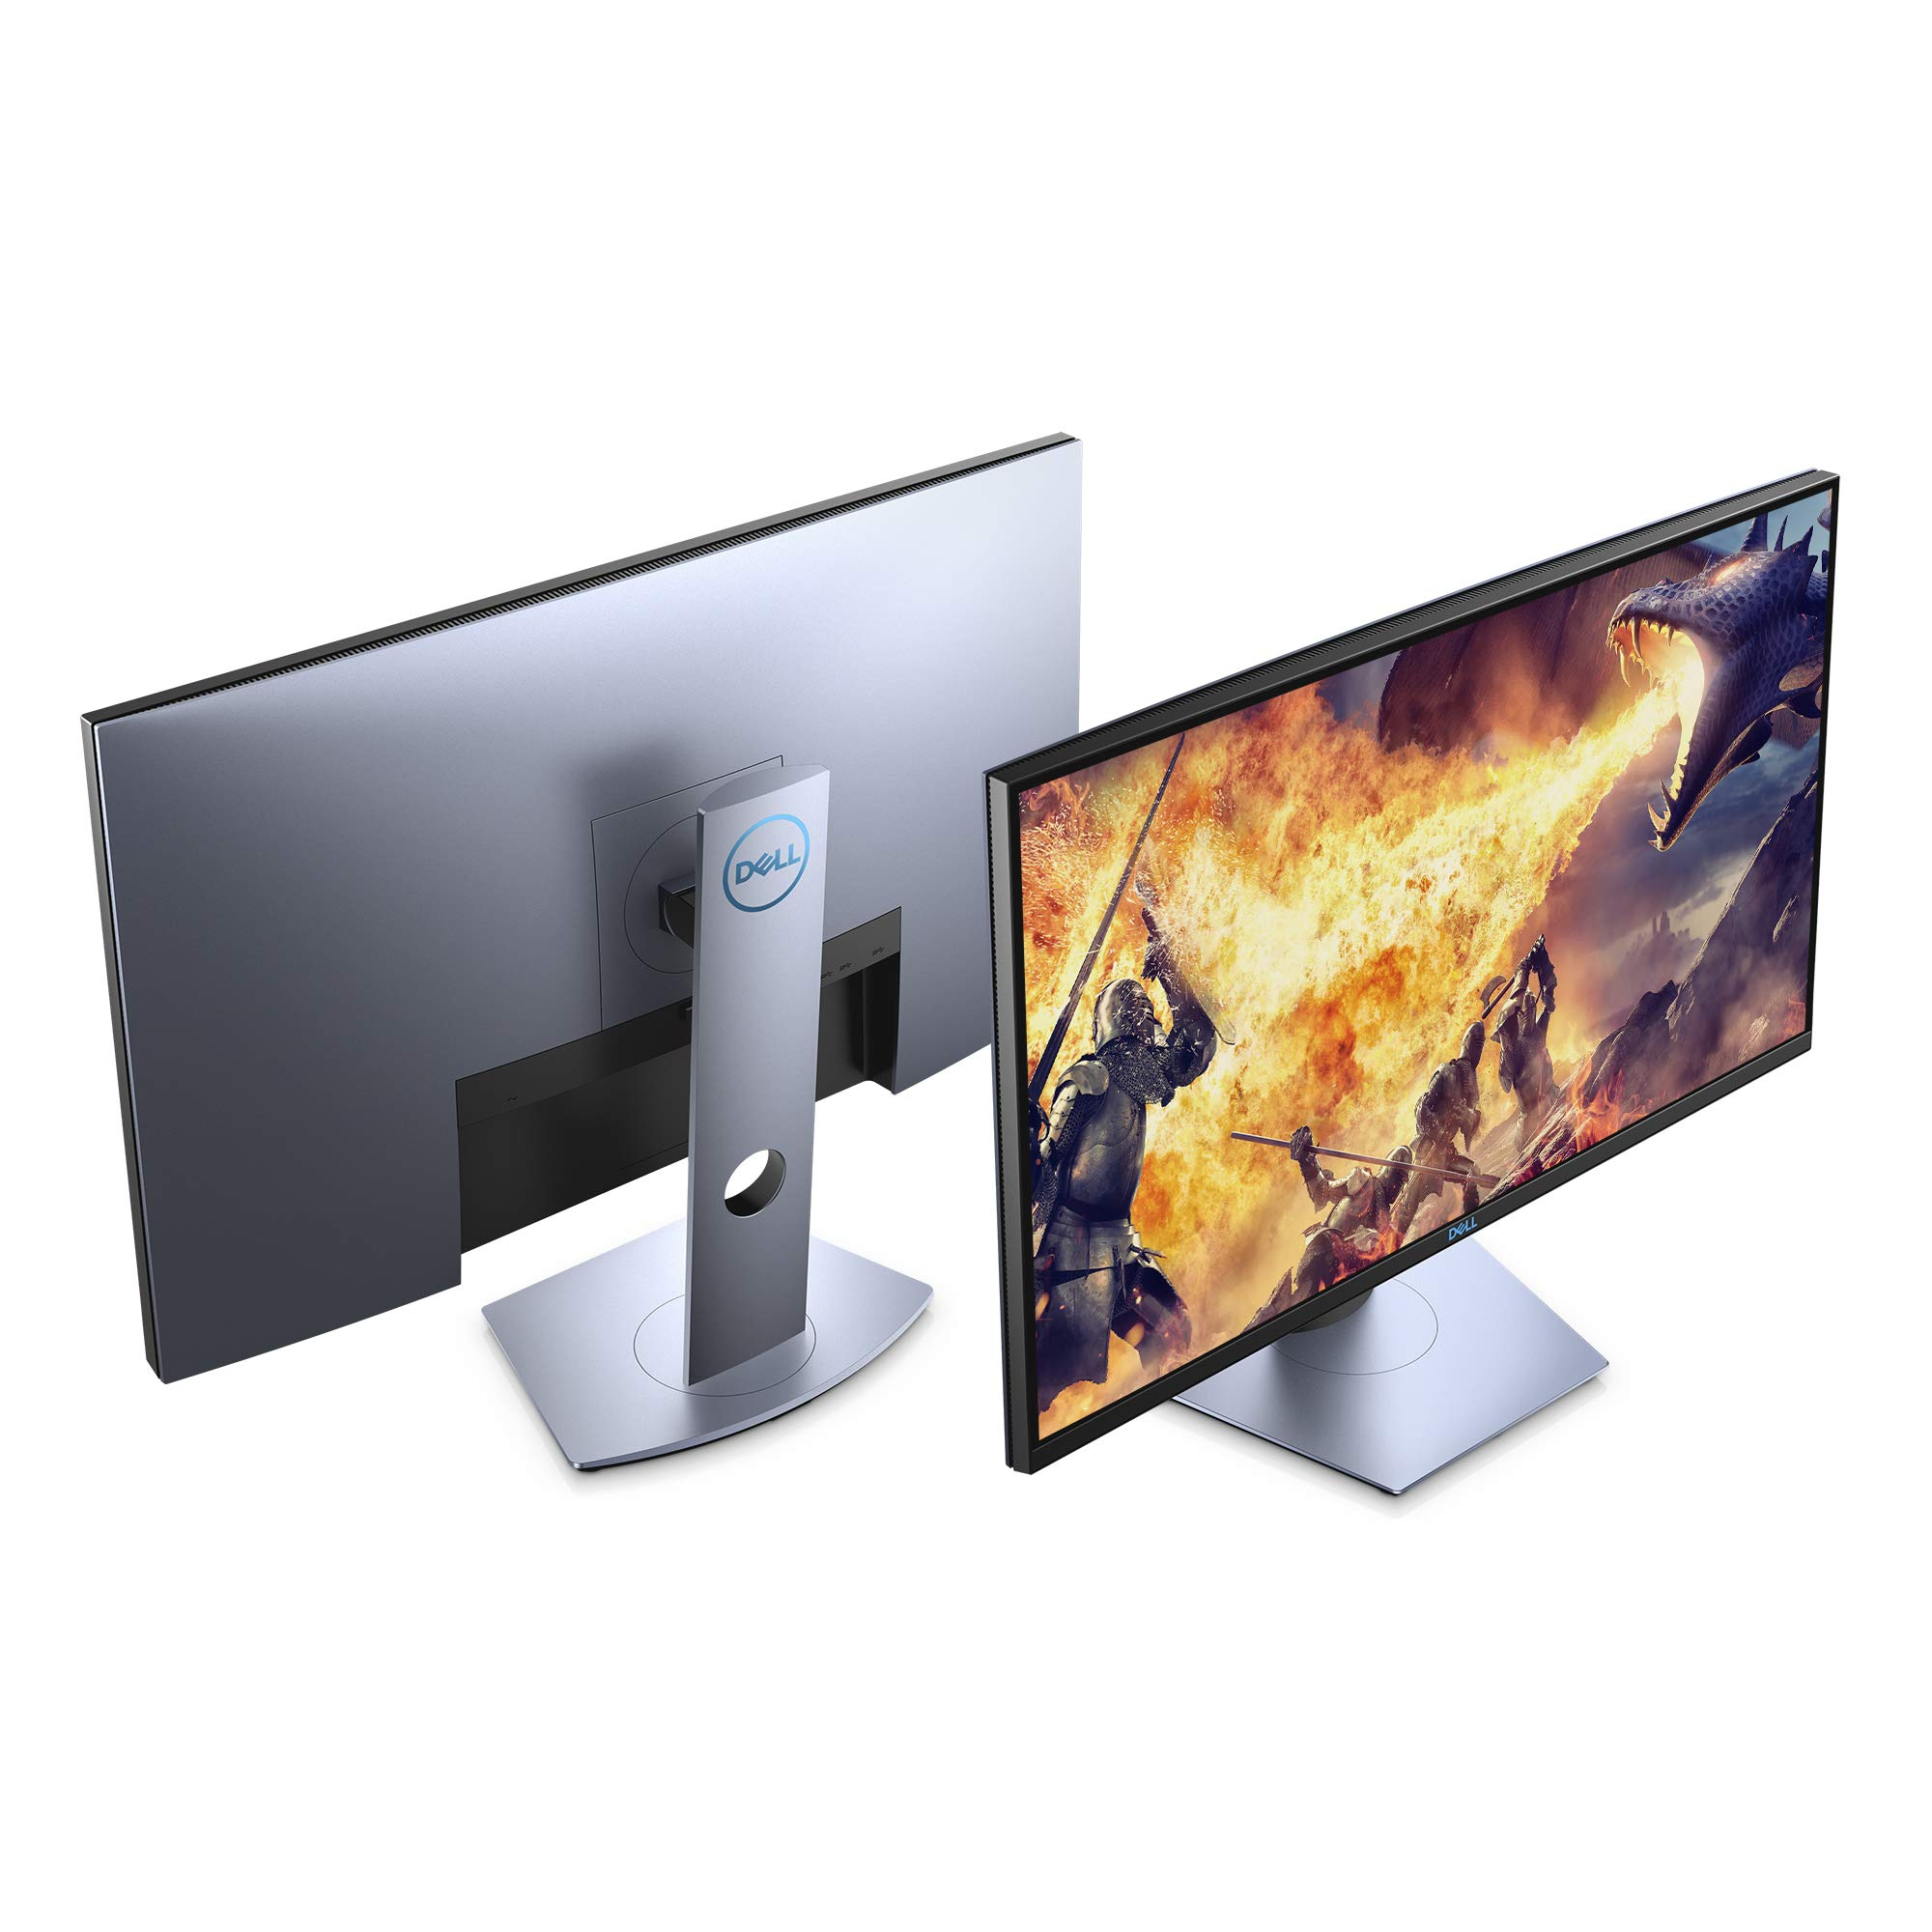 Dell S-Series 27-Inch Screen LED-Lit Gaming Monitor (S2719DGF); QHD (2560 x 1440) up to 155 Hz; 16:9; 1ms Response time; HDMI 2.0; DP 1.2; USB; FreeSync; LED; Height Adjust, tilt, Swivel & Pivot by Dell (Image #11)